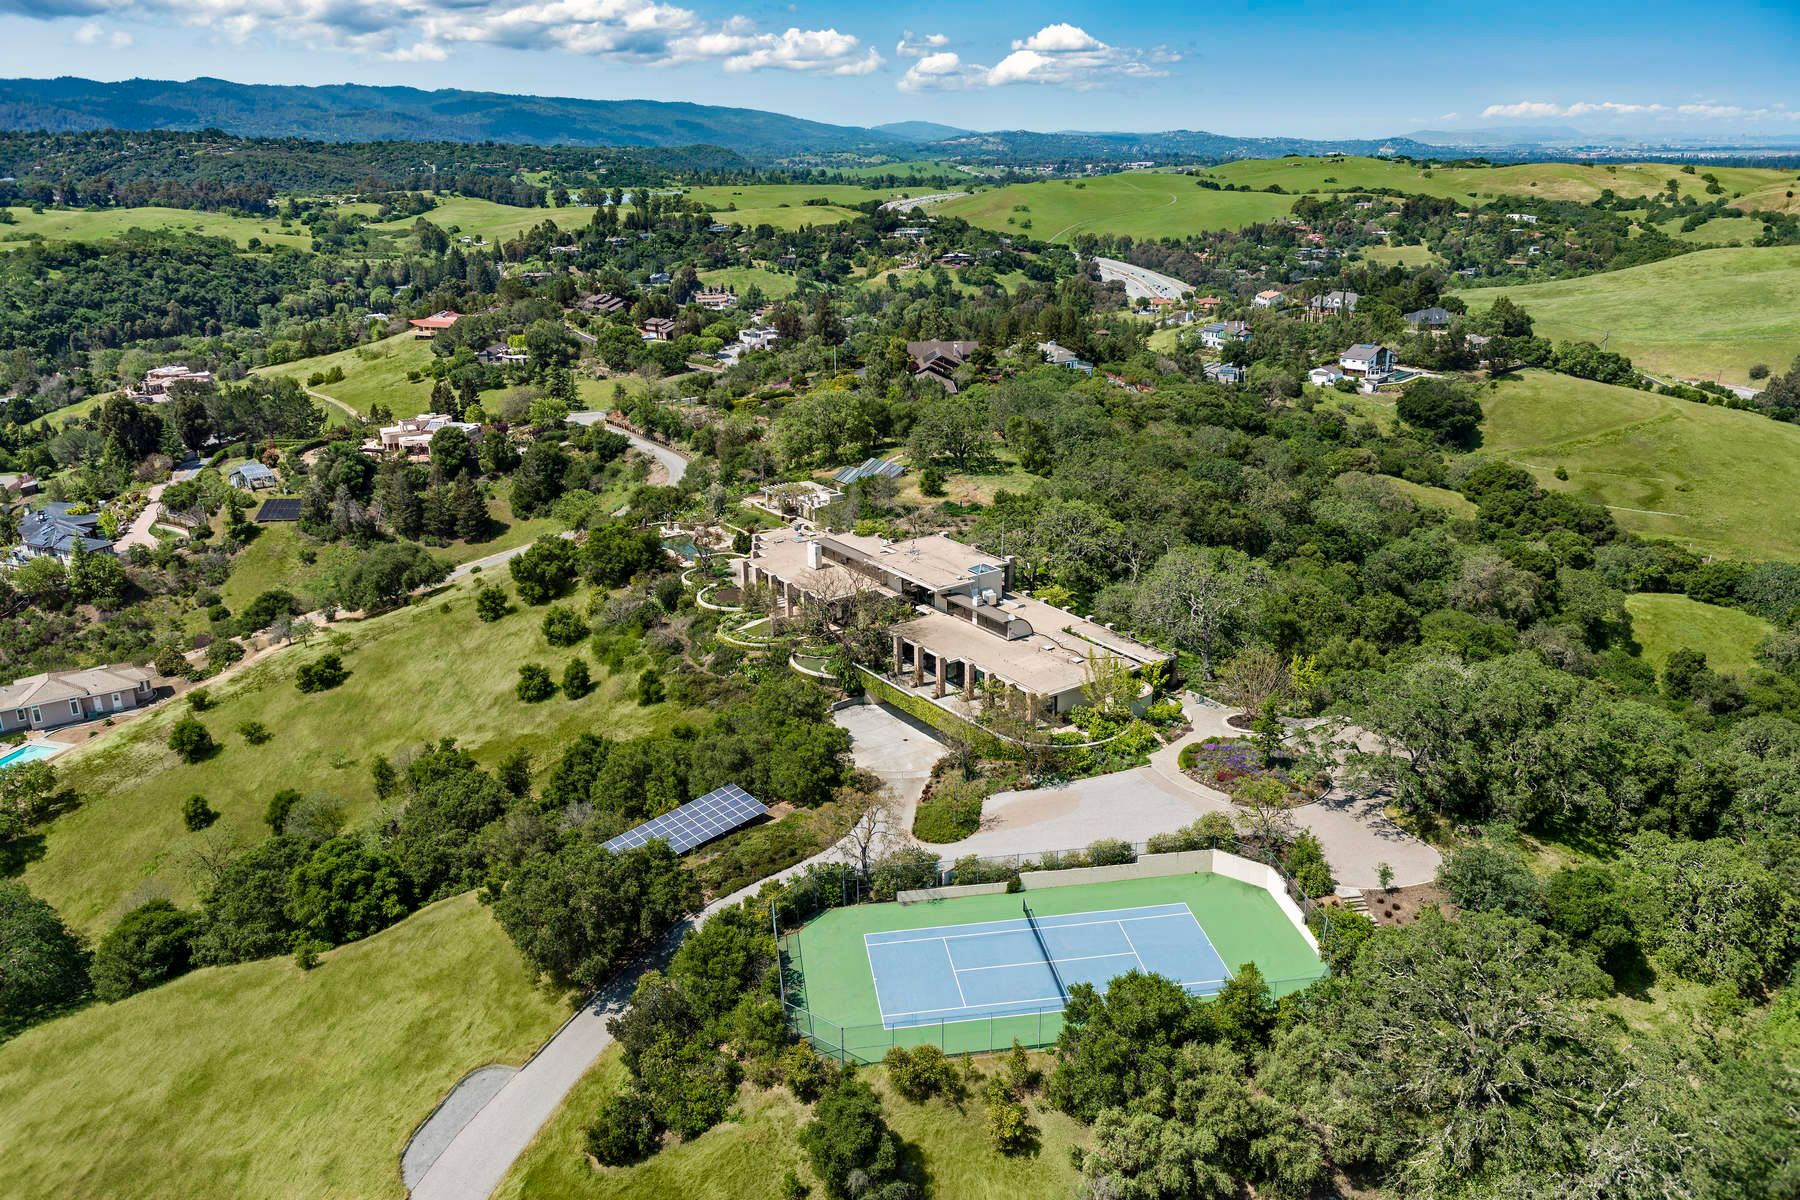 Single Family Home for Sale at Approx. 48 Acres - Los Altos Hills 28011 Elena Rd Los Altos Hills, California 94022 United States